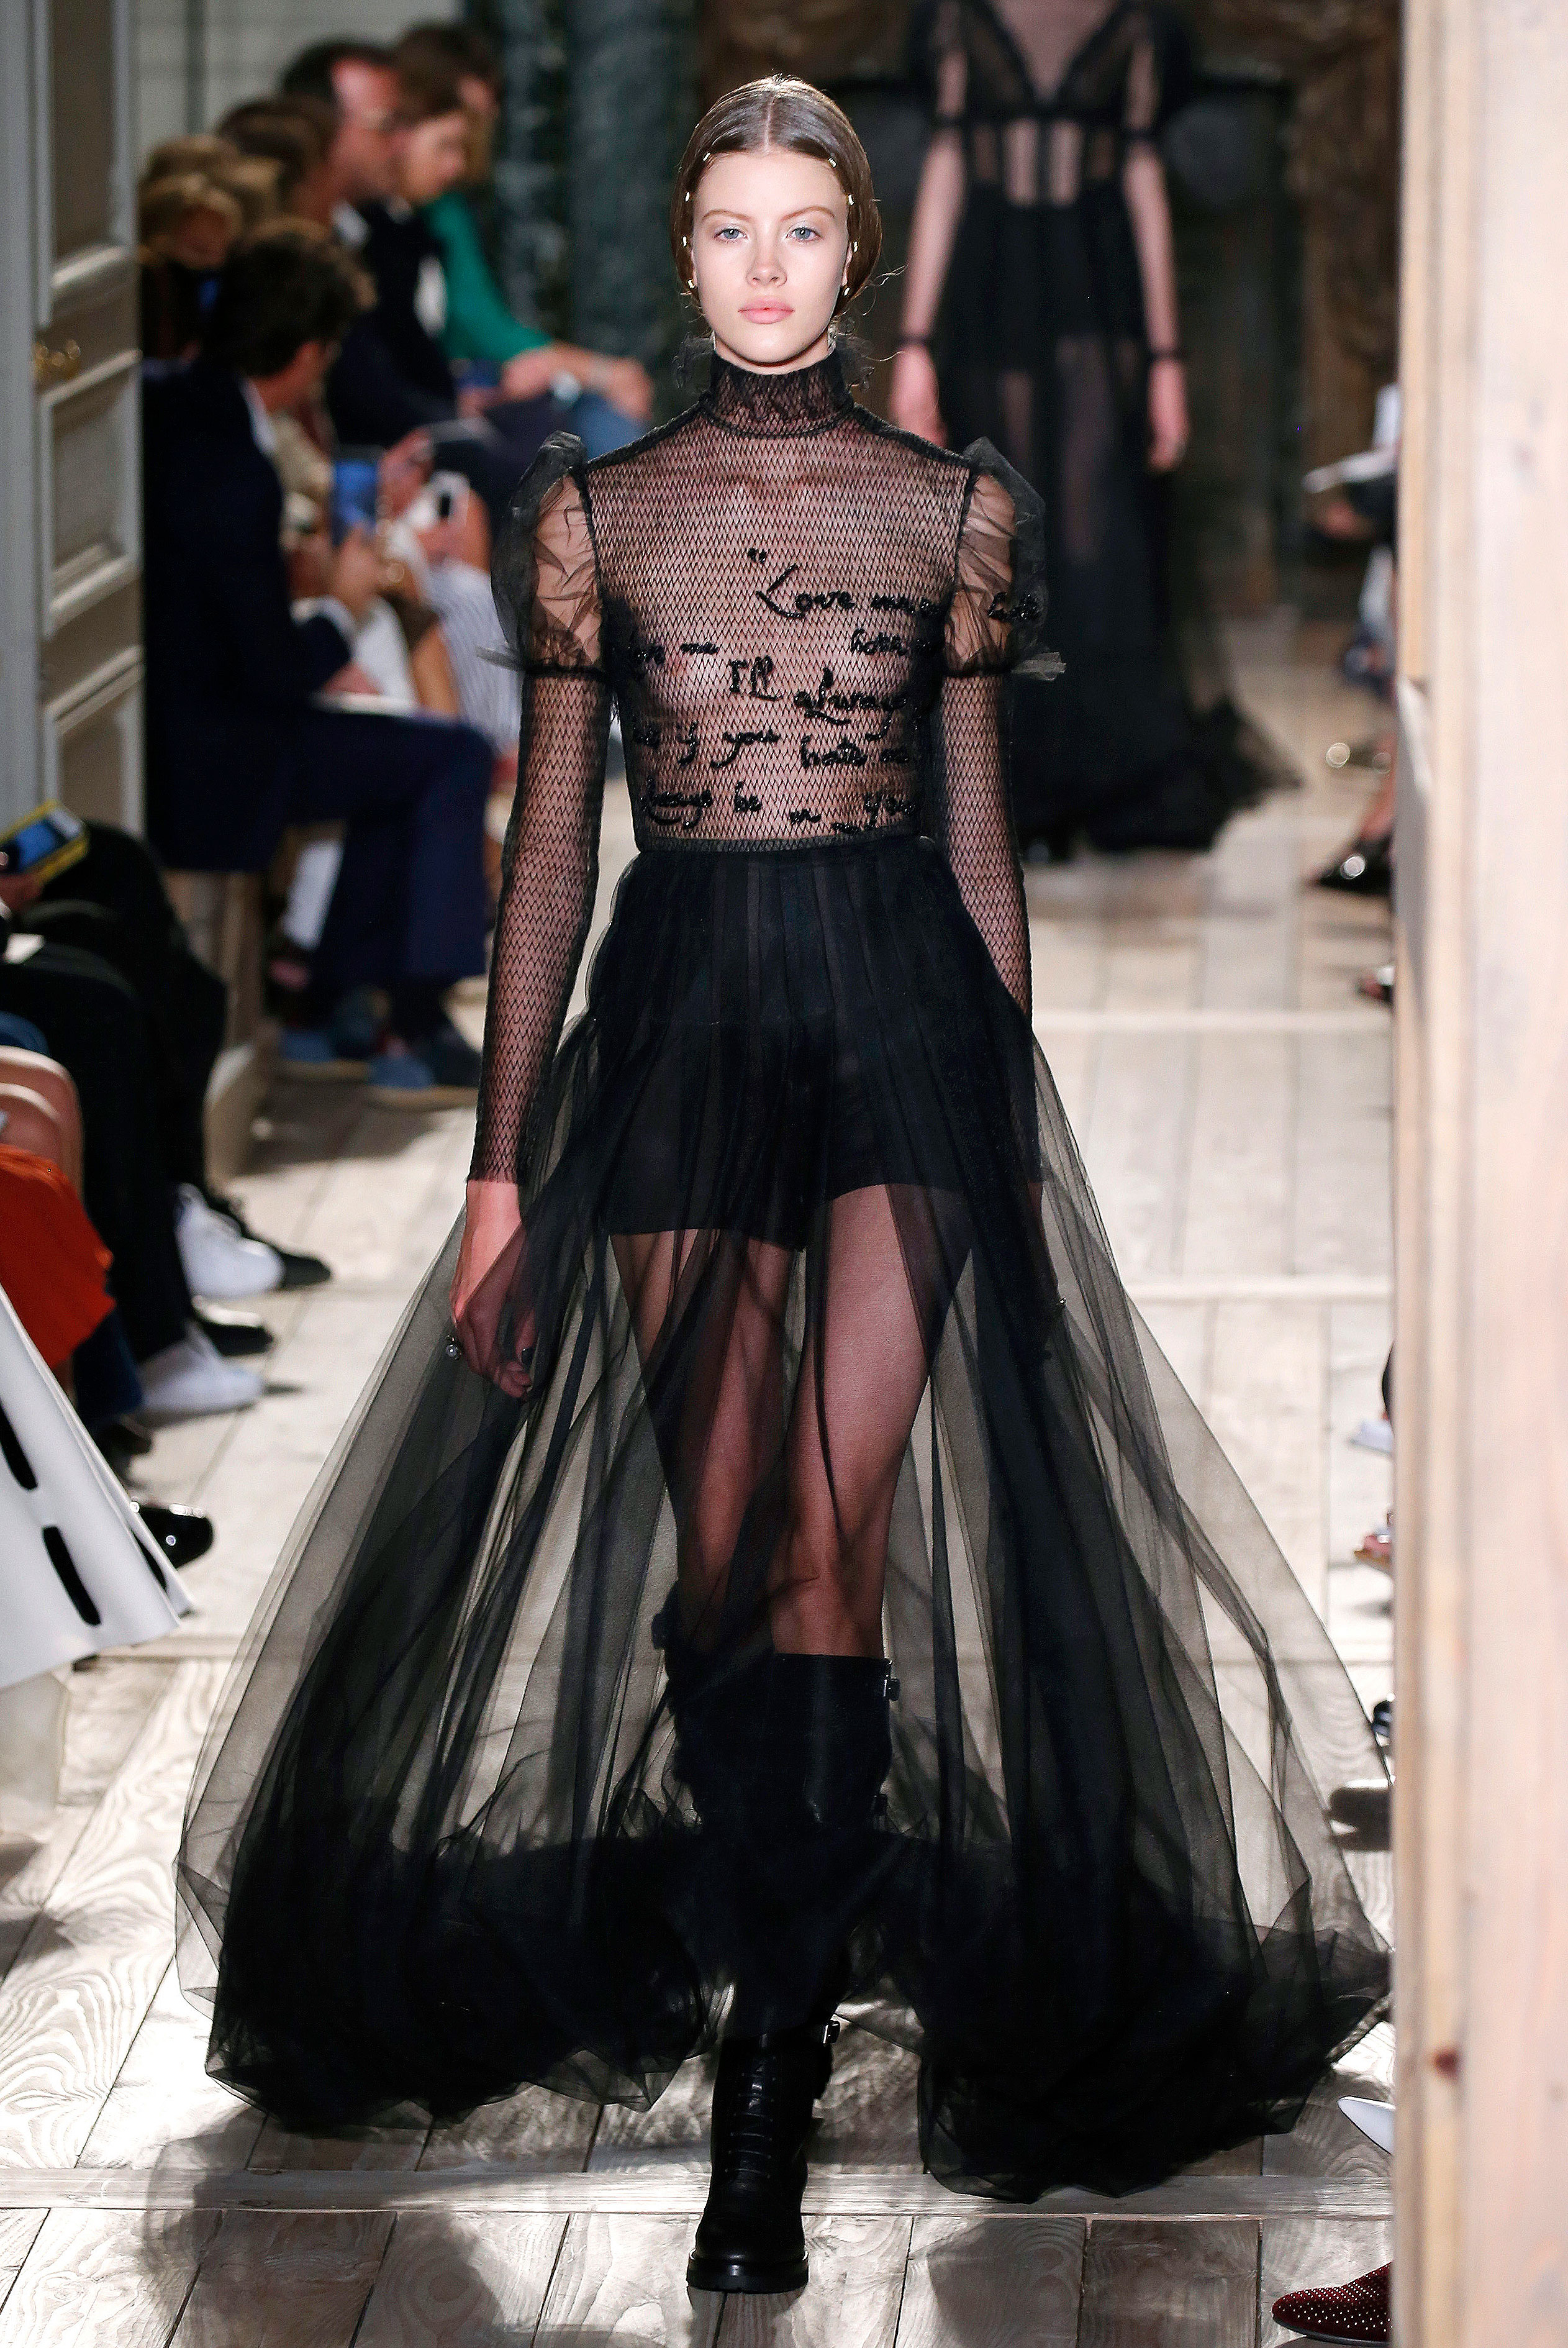 This Valentino Gown Took 580 Hours to Make